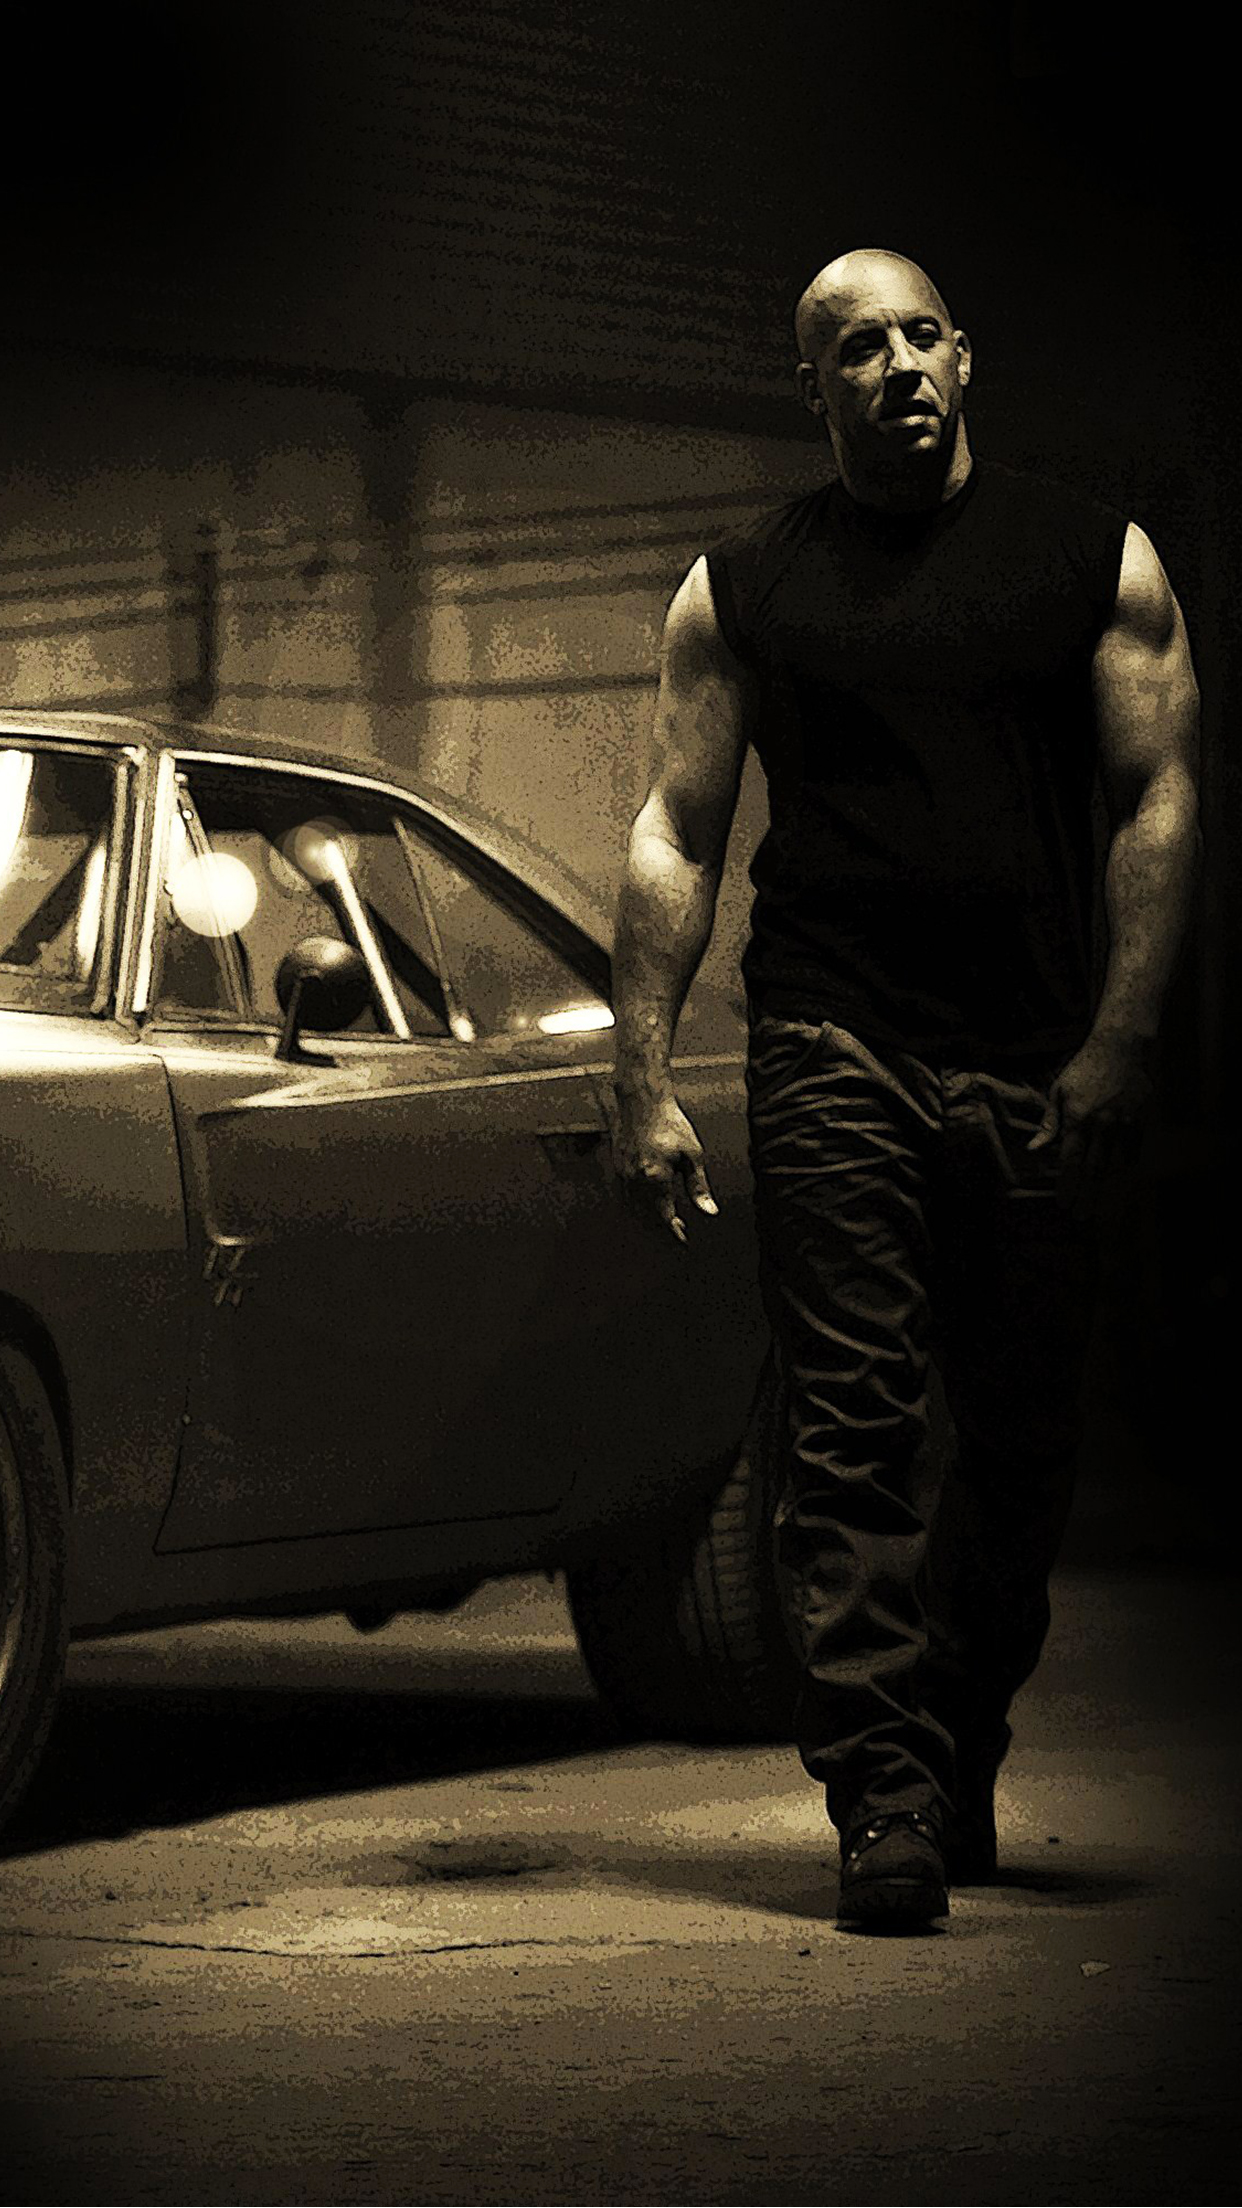 Vin Diesel Fast And Furious Wallpaper Posted By Sarah Simpson